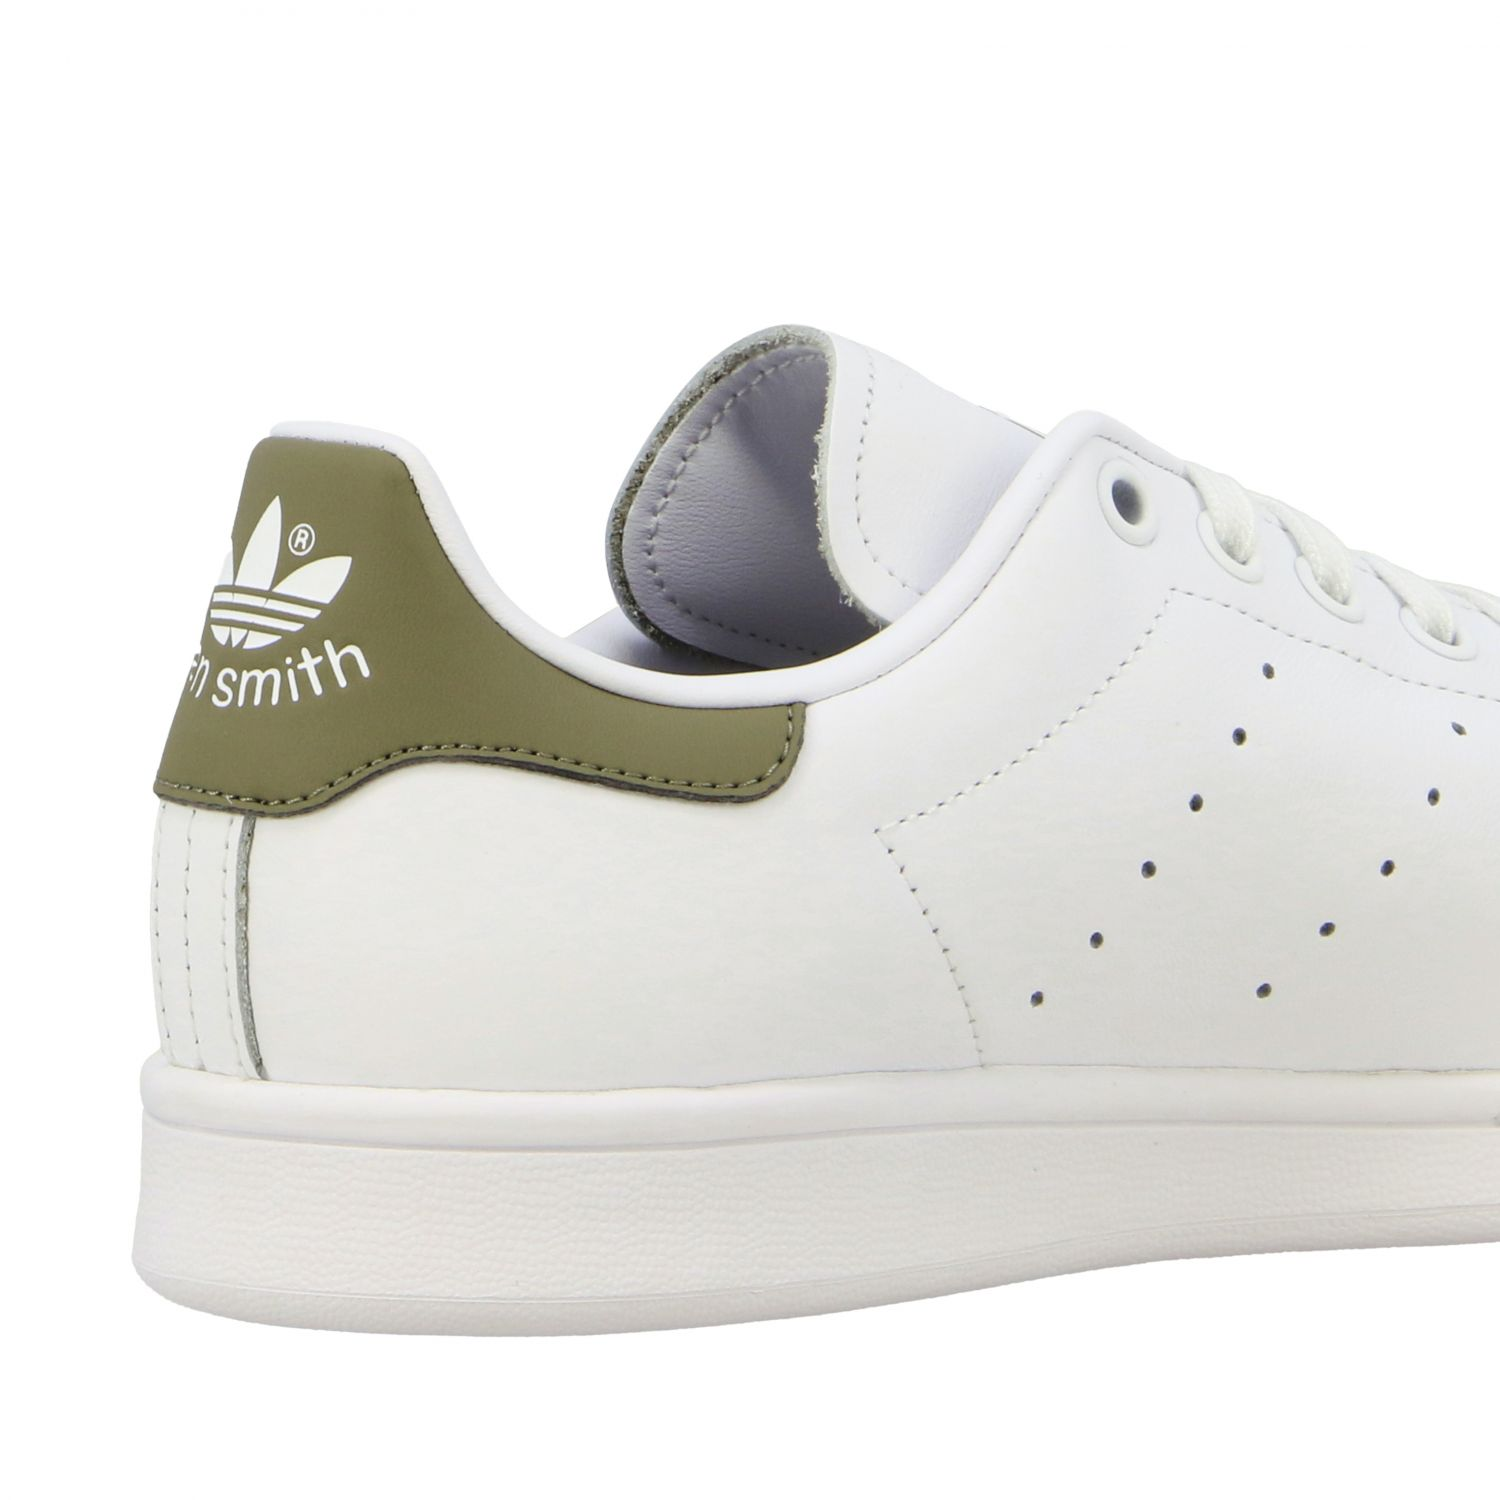 Baskets en cuir Adidas Originals Stan Smith blanc 5